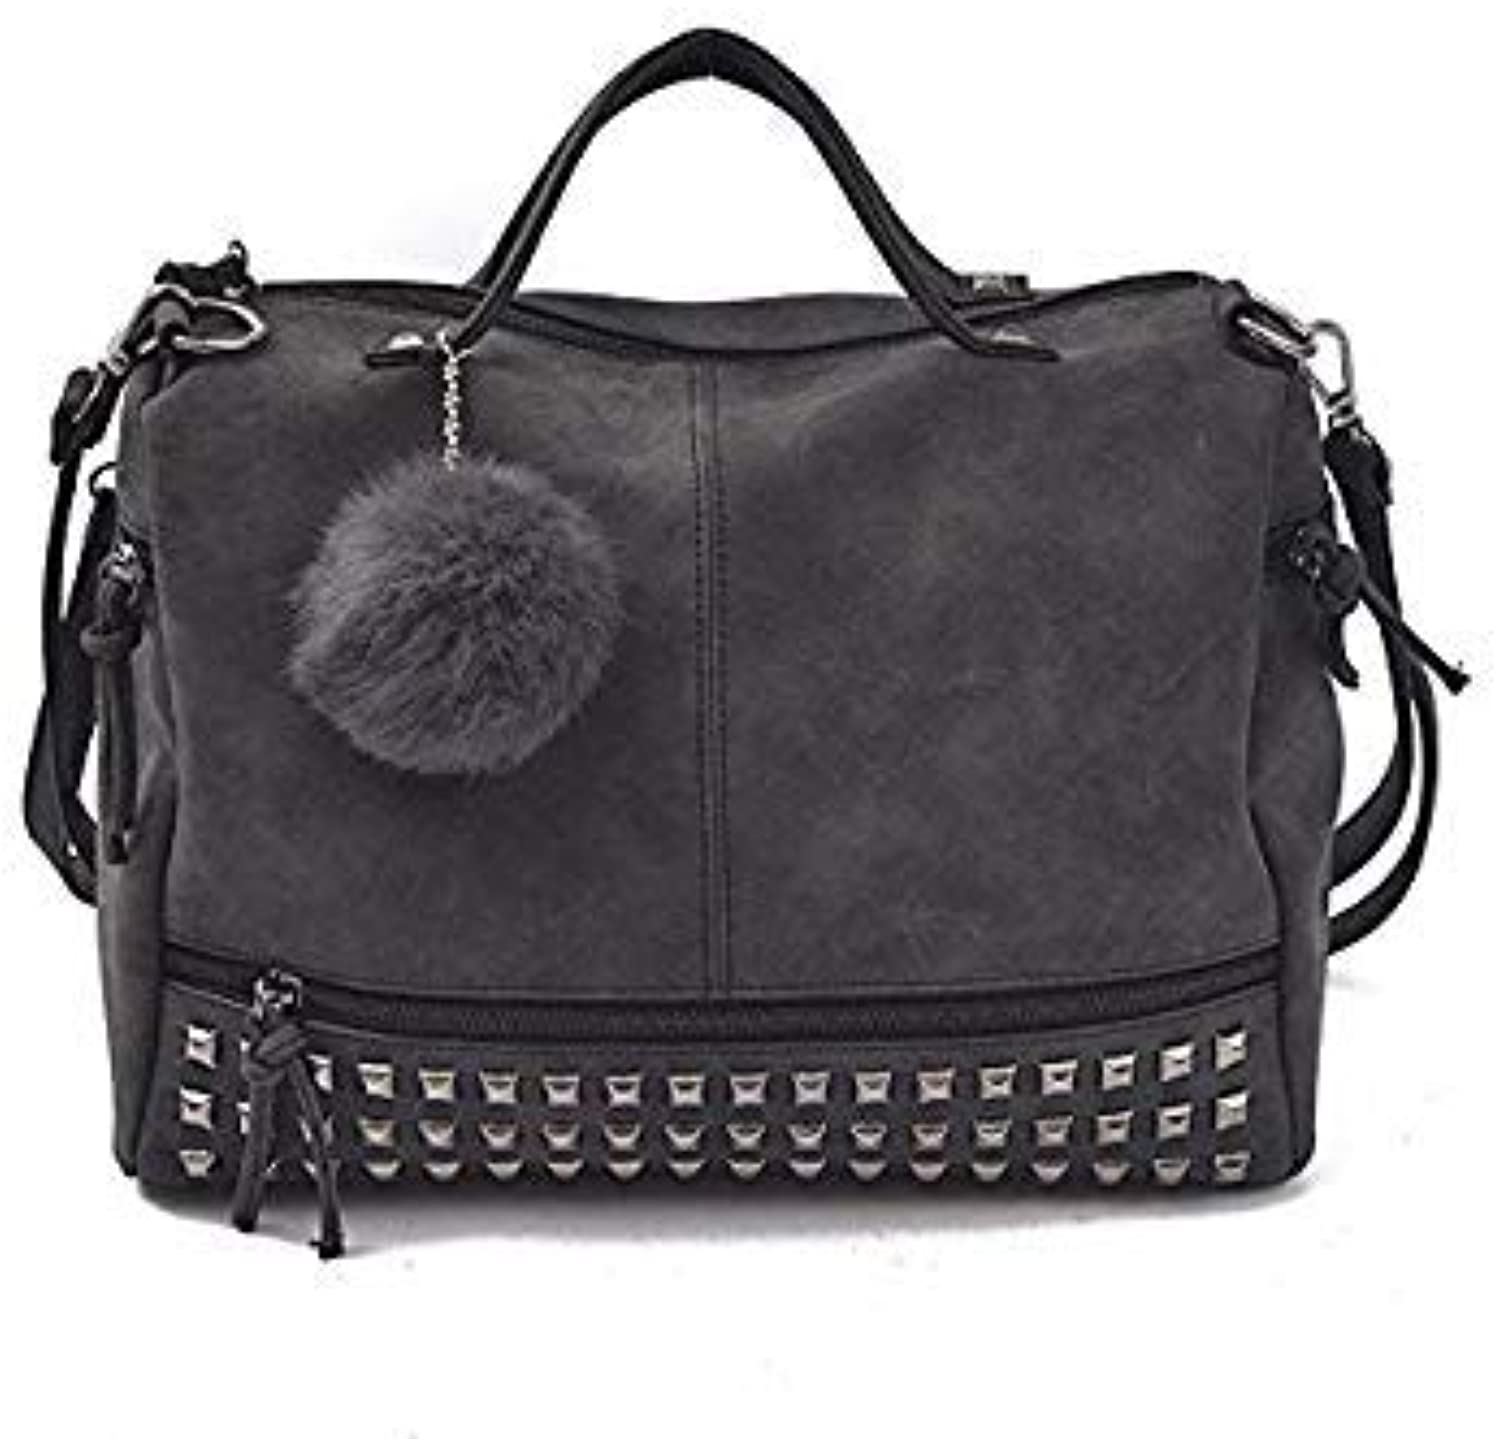 Bloomerang BENVICHED 2018 Luxury Suede Leather Handbags Women Bags Designer Vintage top-Handle Bags Punk Rivet Crossbody Shoulder Bag R529 color Black